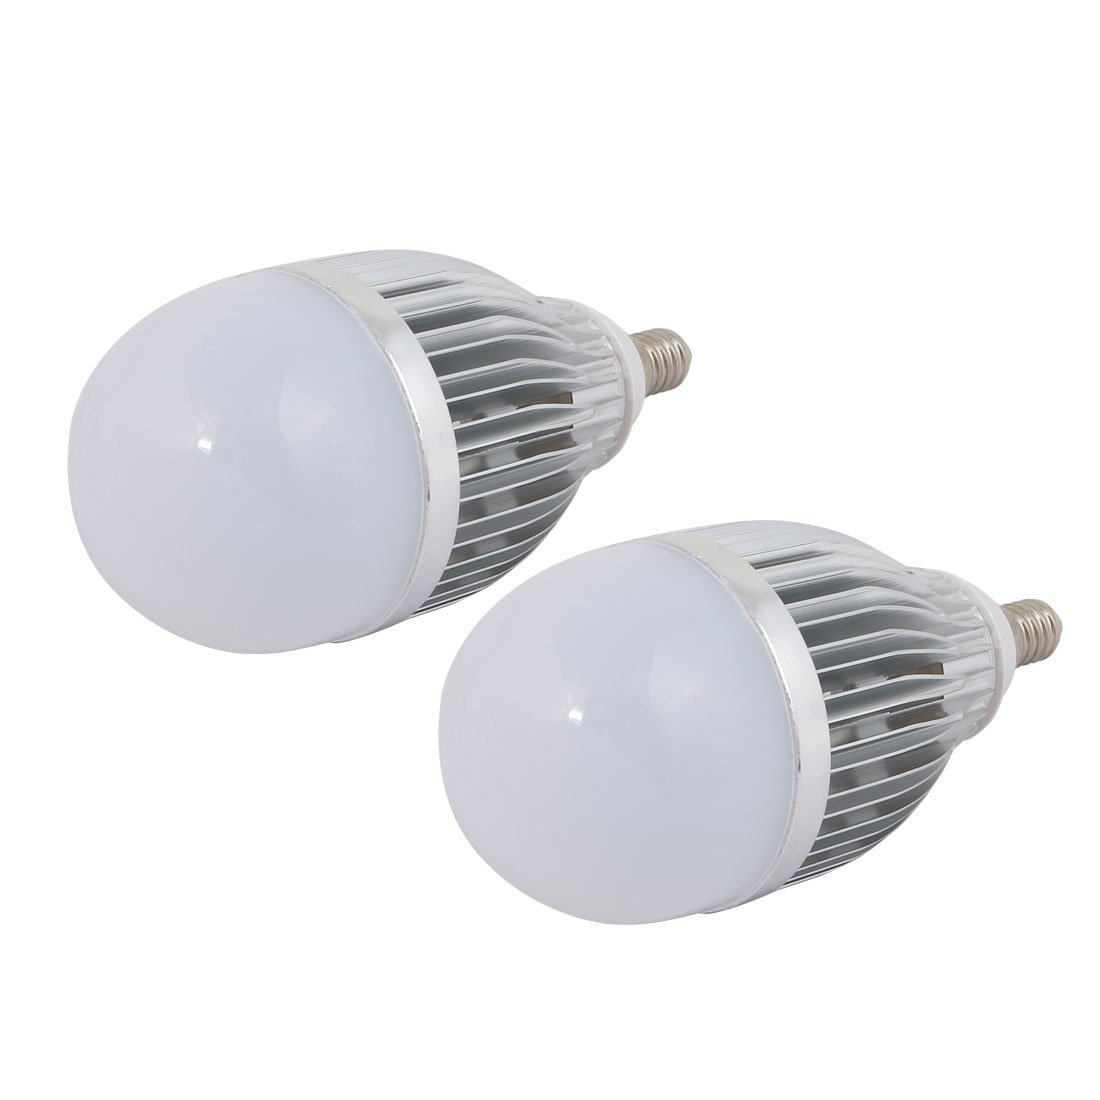 uxcell 2Pcs 9W/12W Sliver Tong Aluminum Ball - Bulb Lamp Housing E14 Base w White Cover